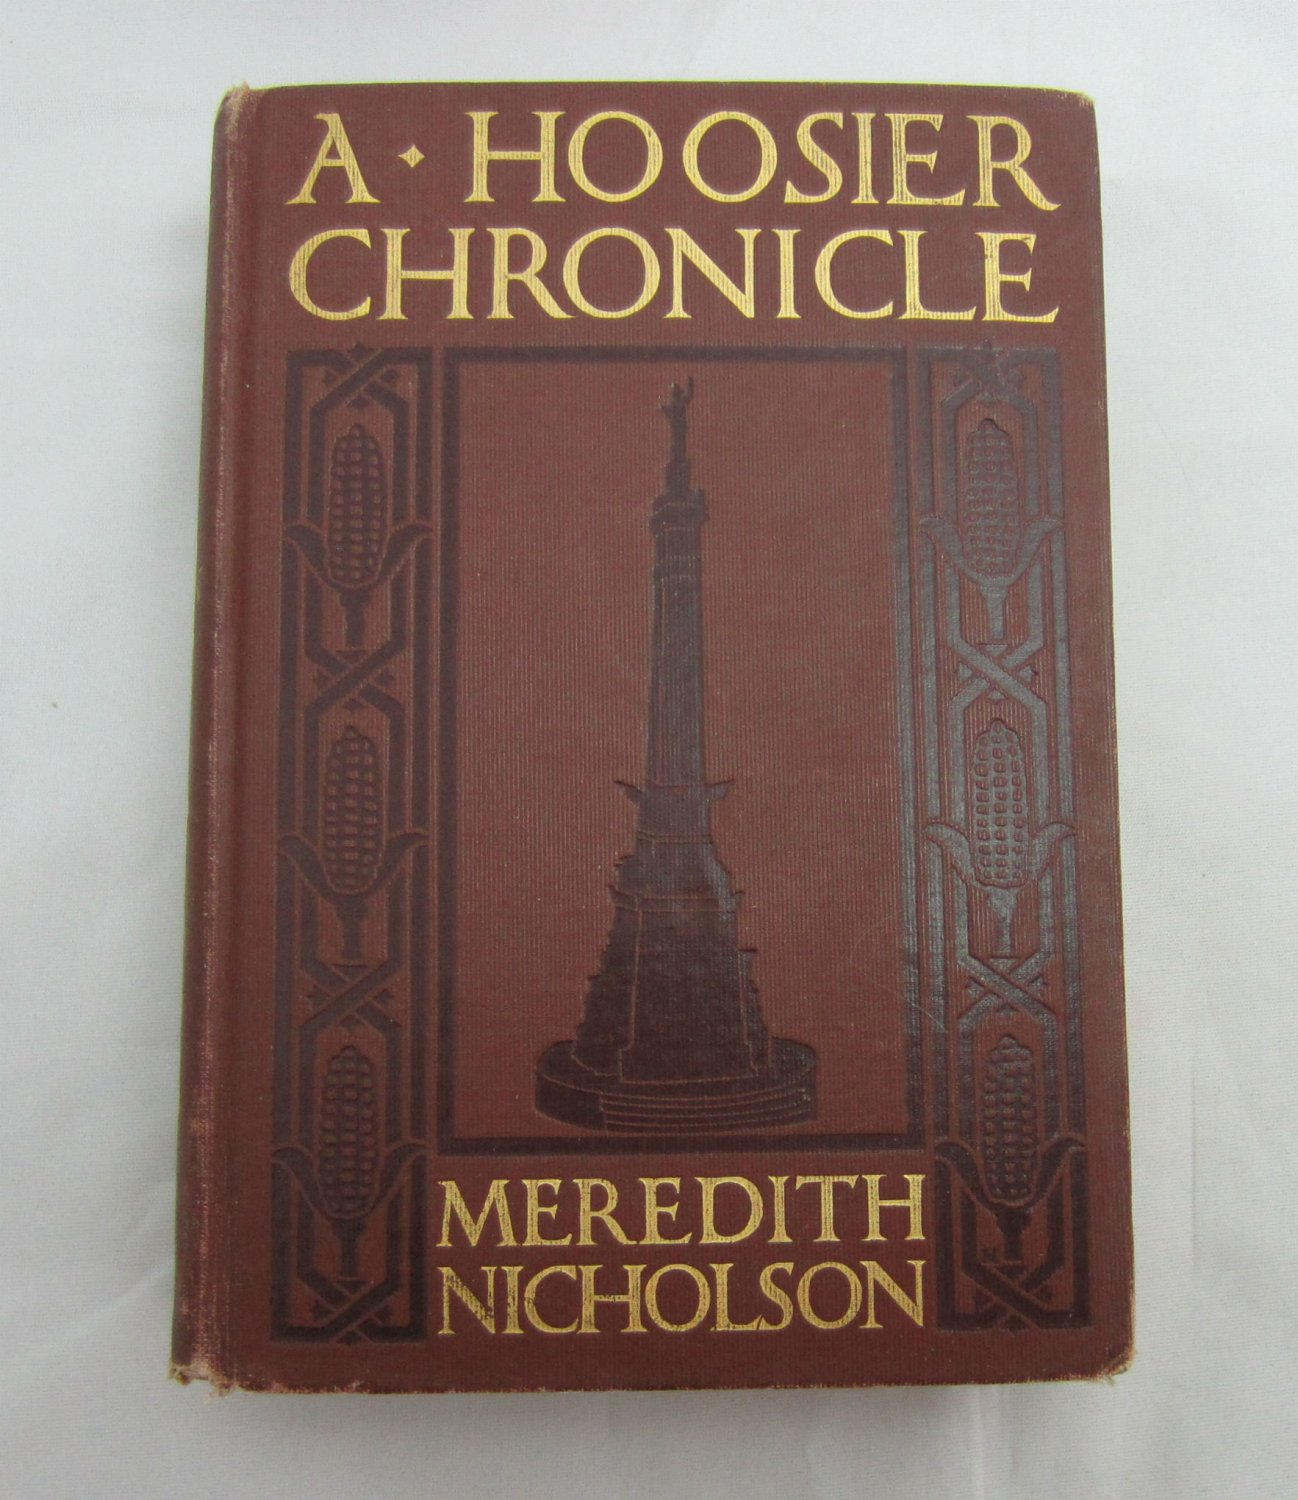 A Hoosier Chronicle Meredith Nicholson 1912 vintage hardcover book